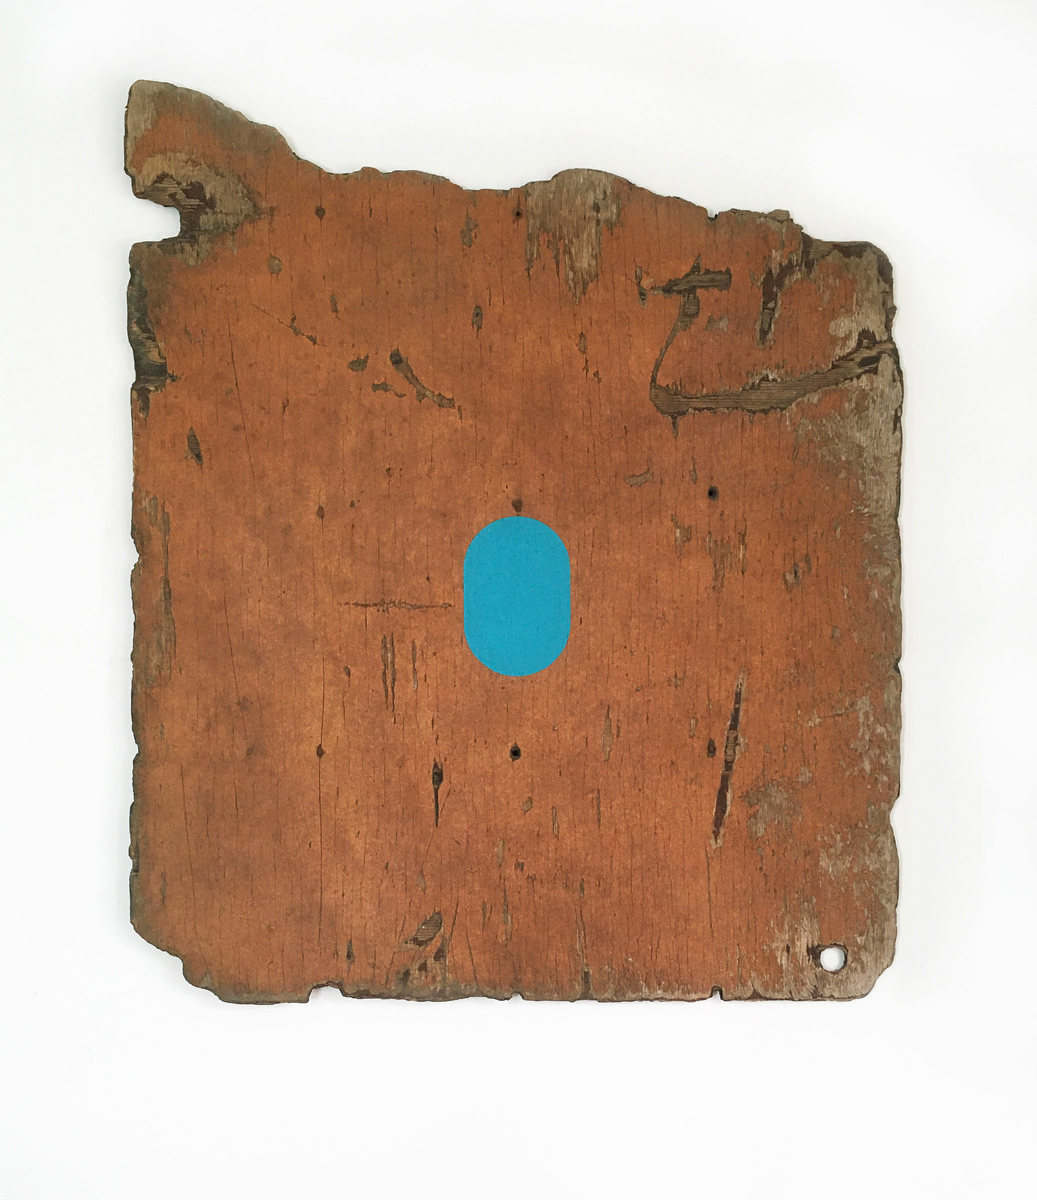 A large piece of distressed painted plywood with a turquoise oval in the center.